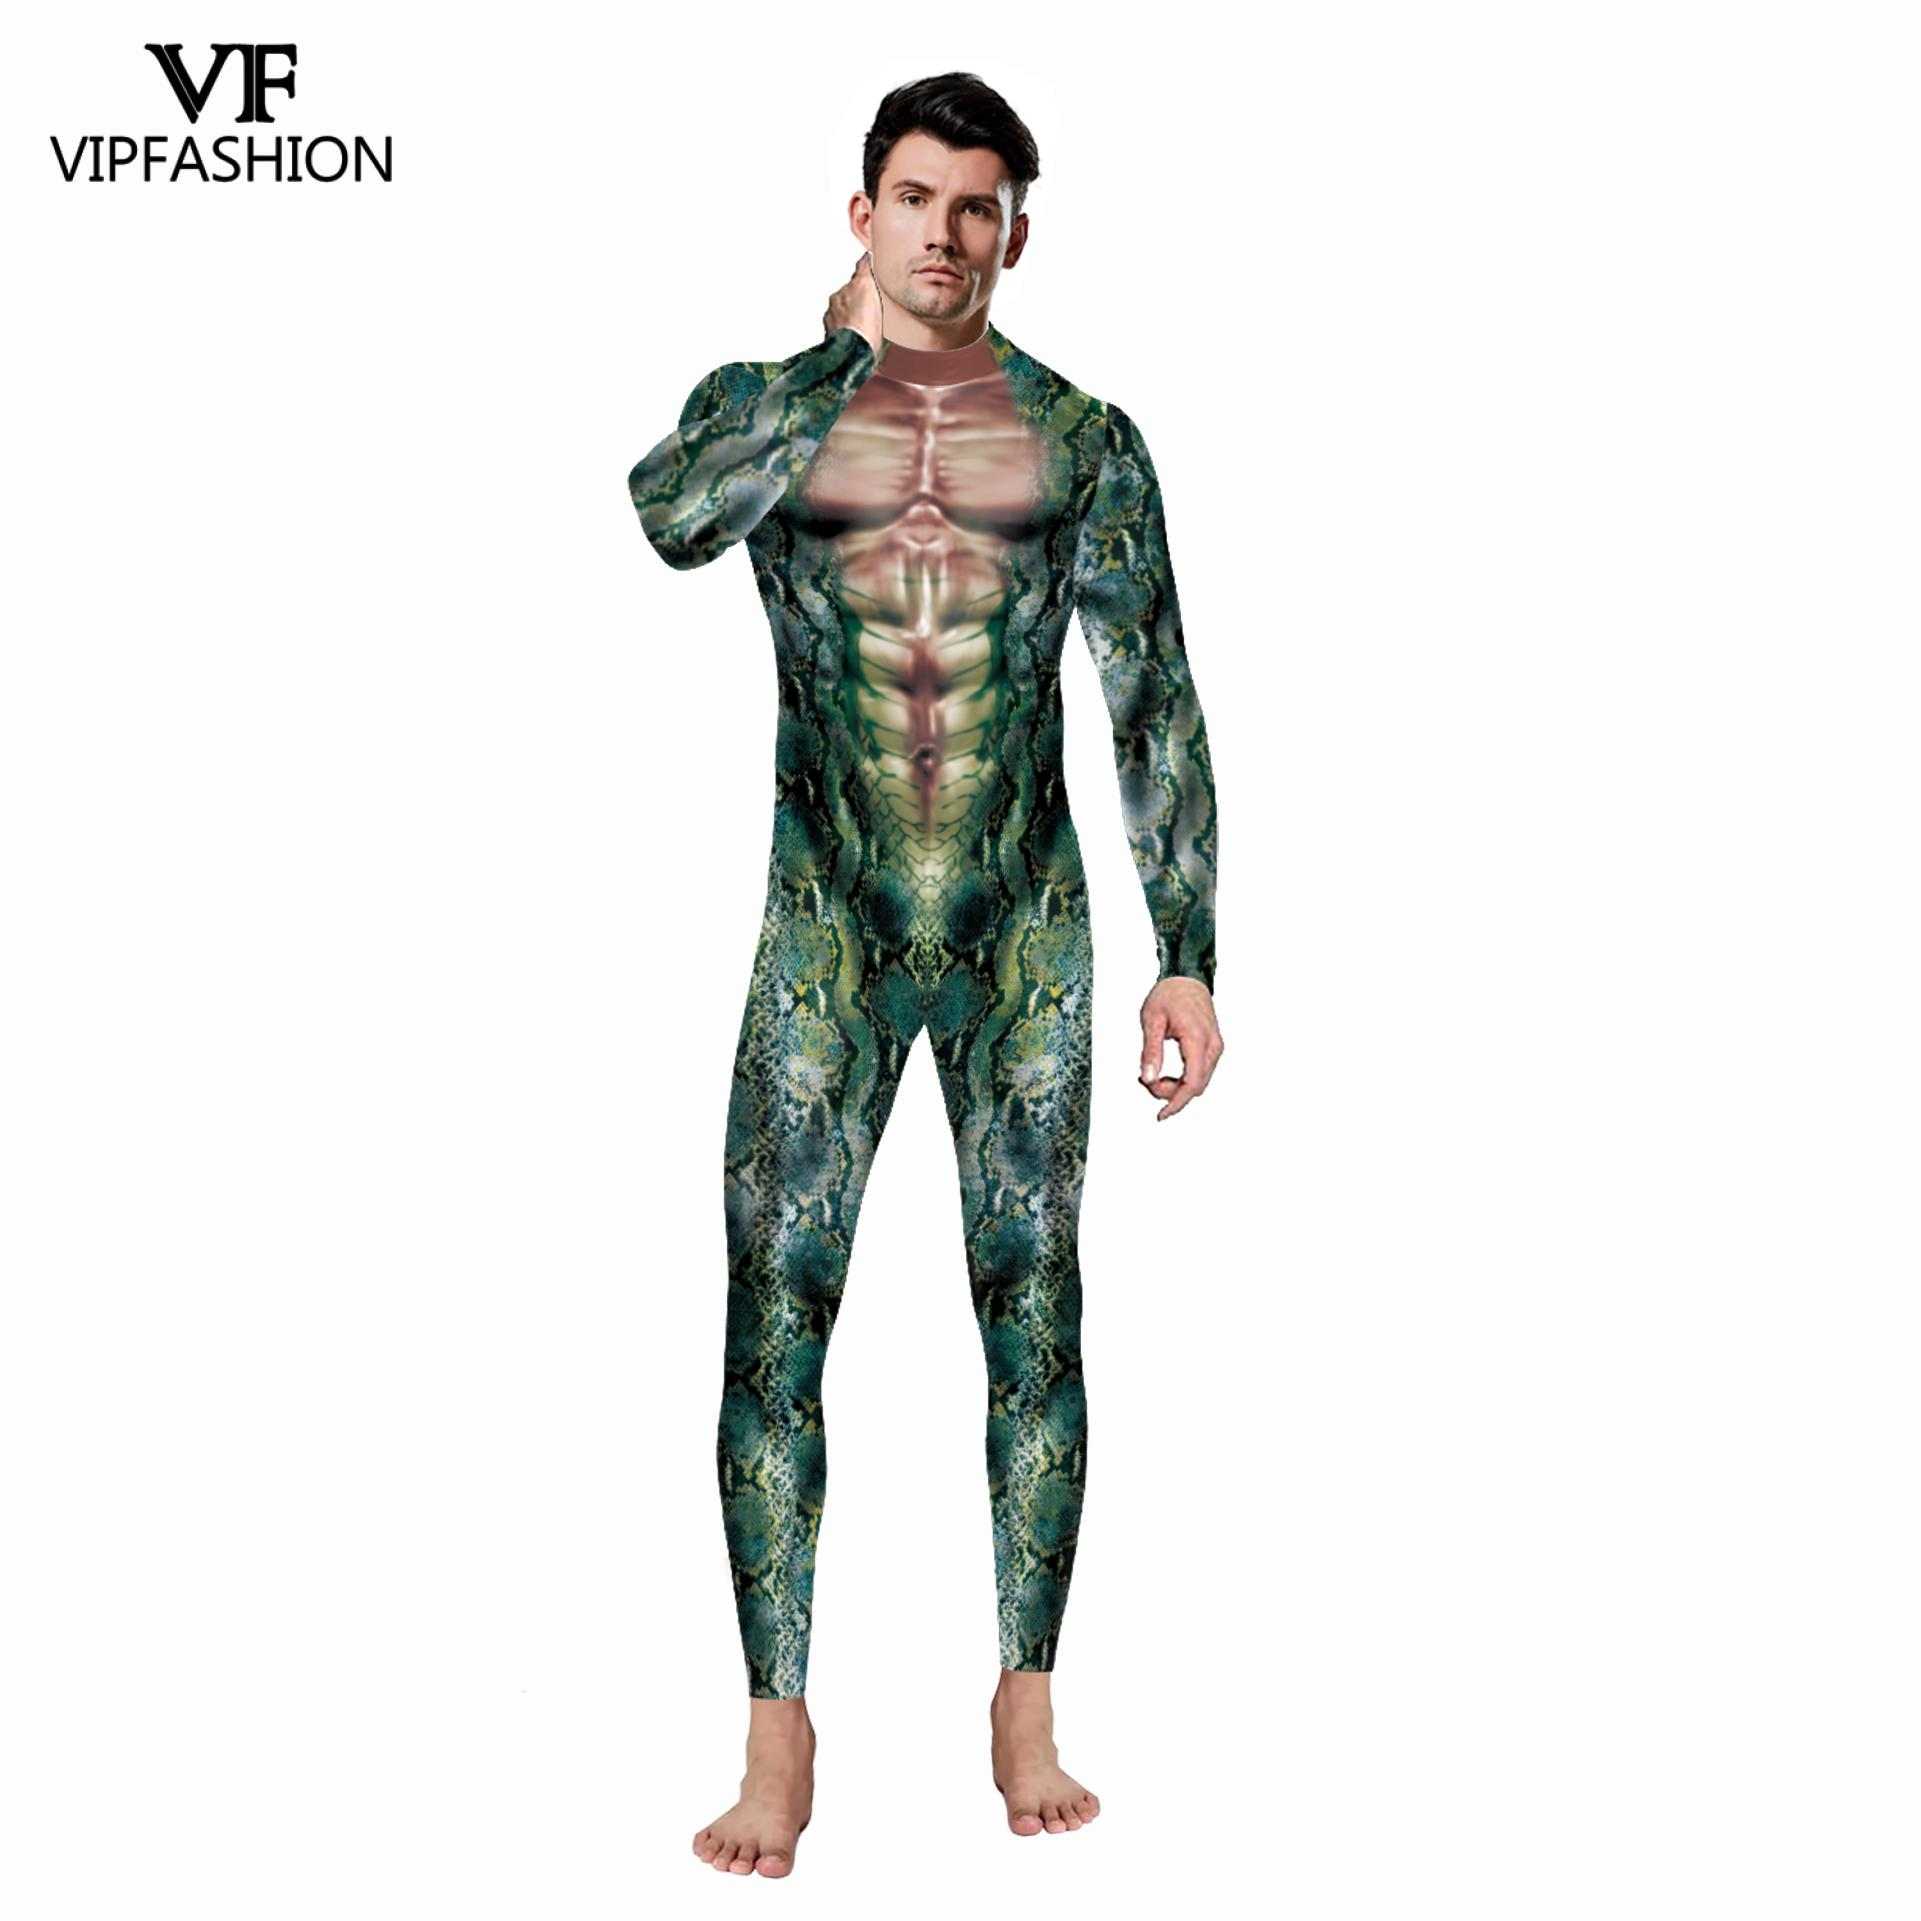 VIP FASHION Adult Sexy Men Halloween Costumes Snake 3D Printing Animal Party Zentai Catsuit Muscle Cosplay Bodysuit Jumpsuit